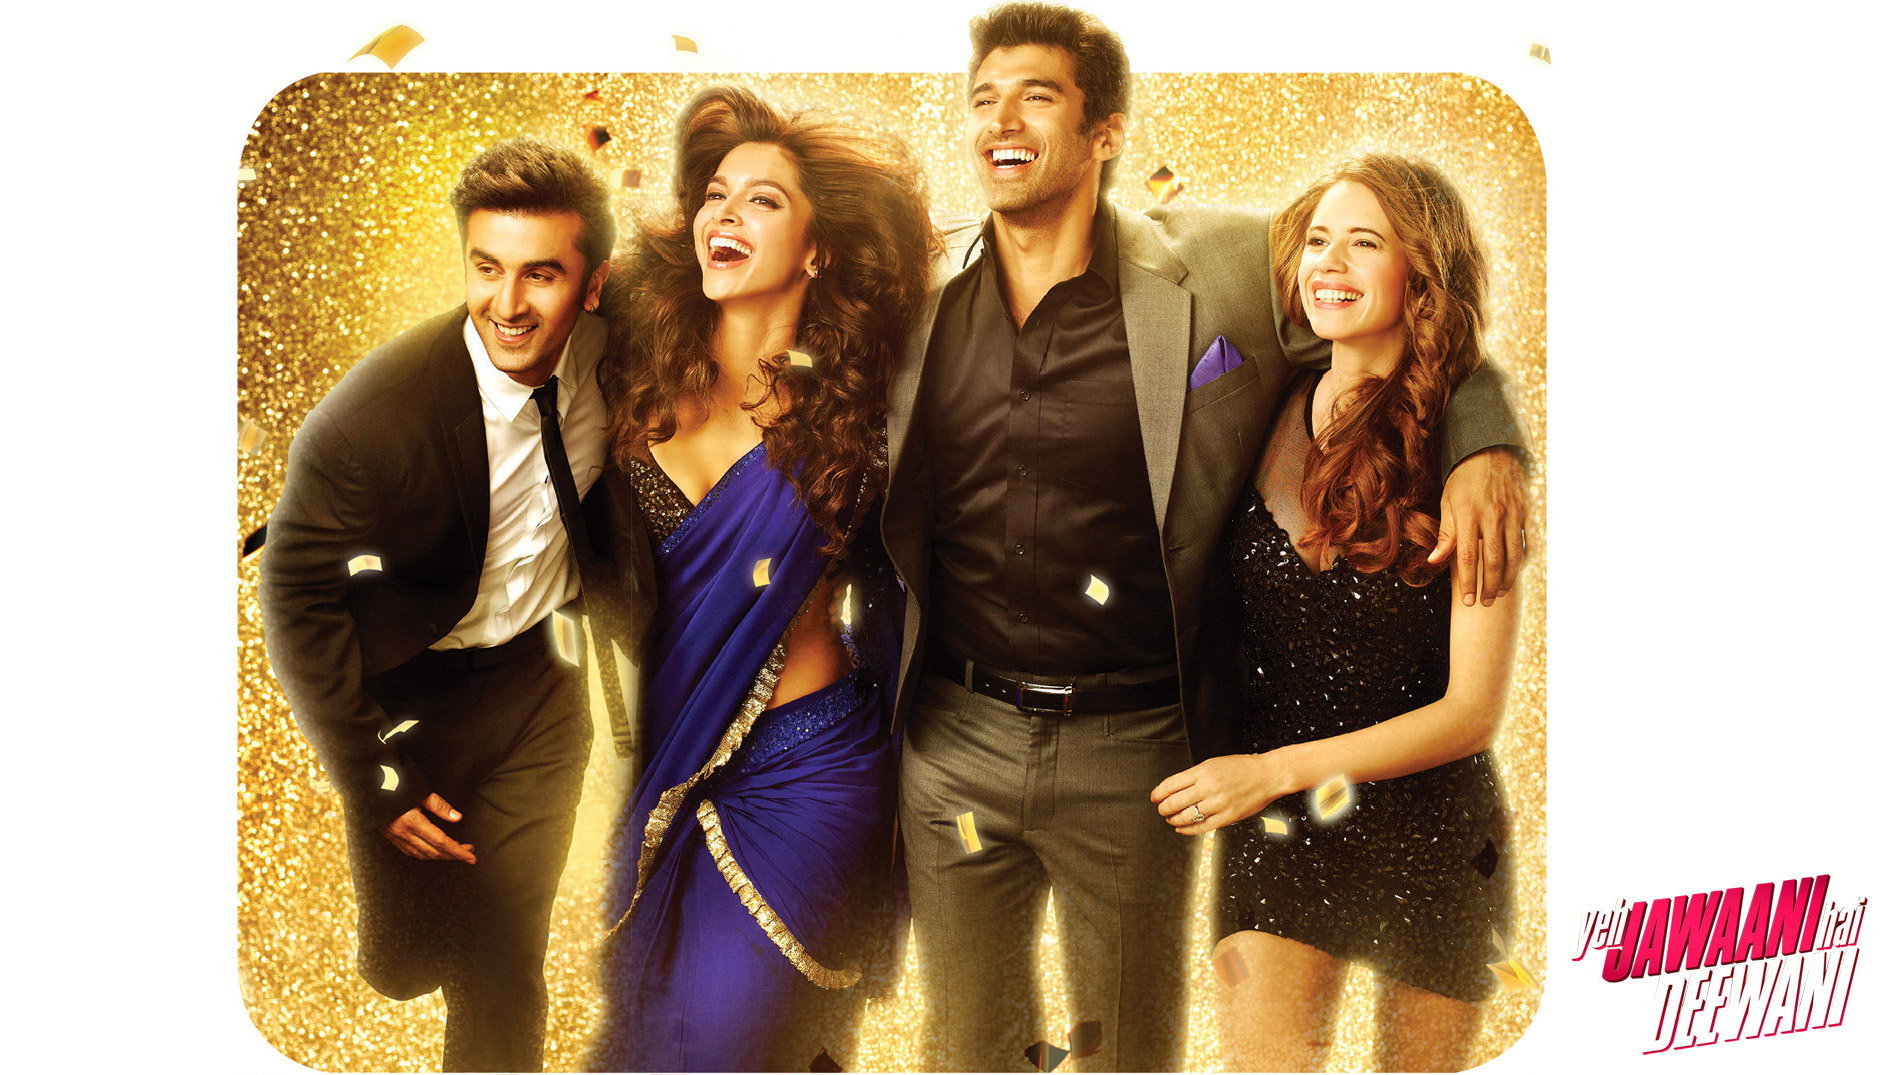 4 years of 'yeh jawaani hai deewani': the lessons i have learned